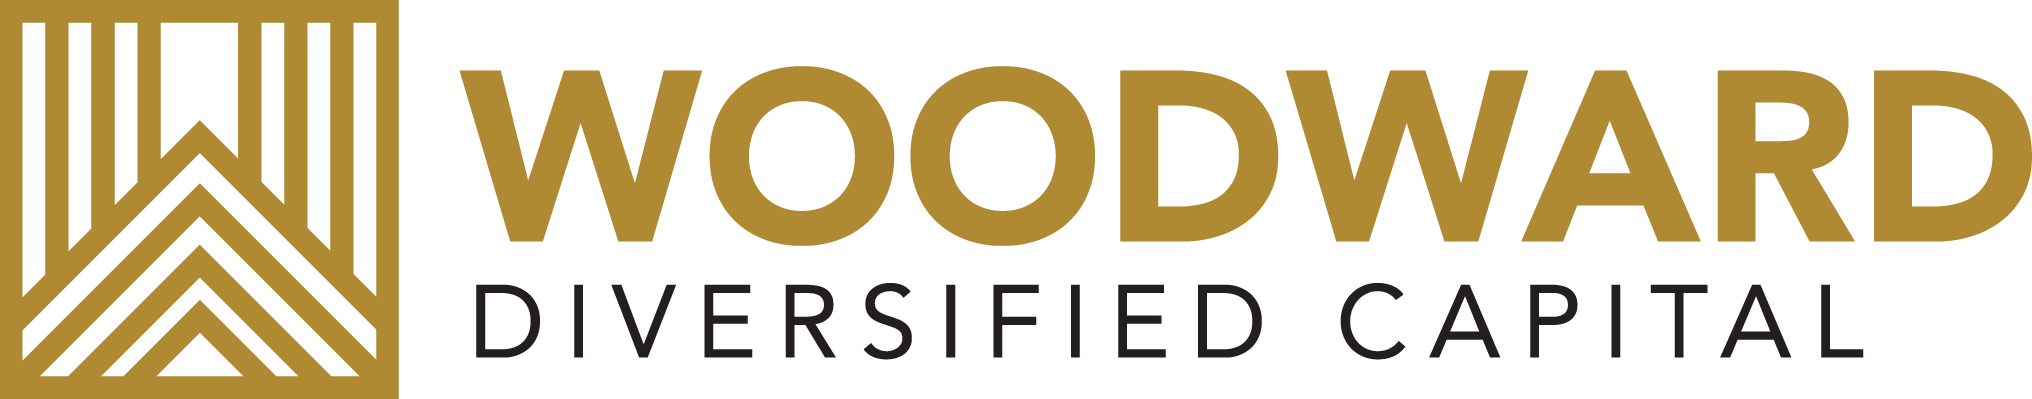 Woodward Diversified Capital